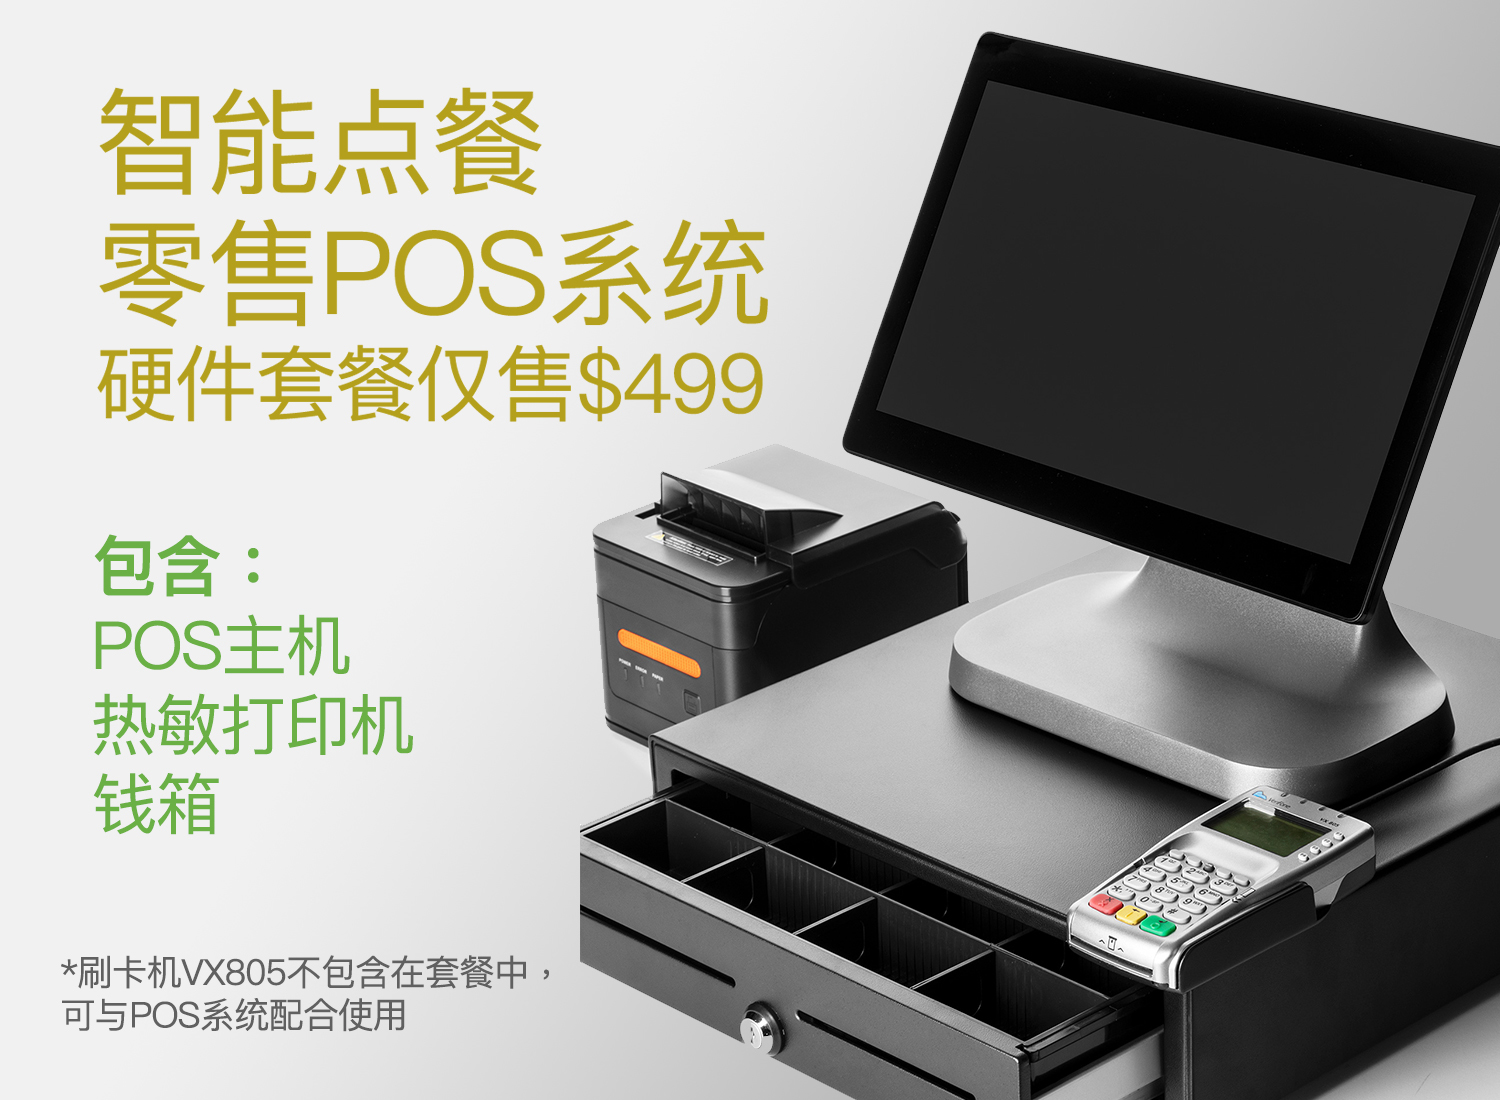 pos device bundle